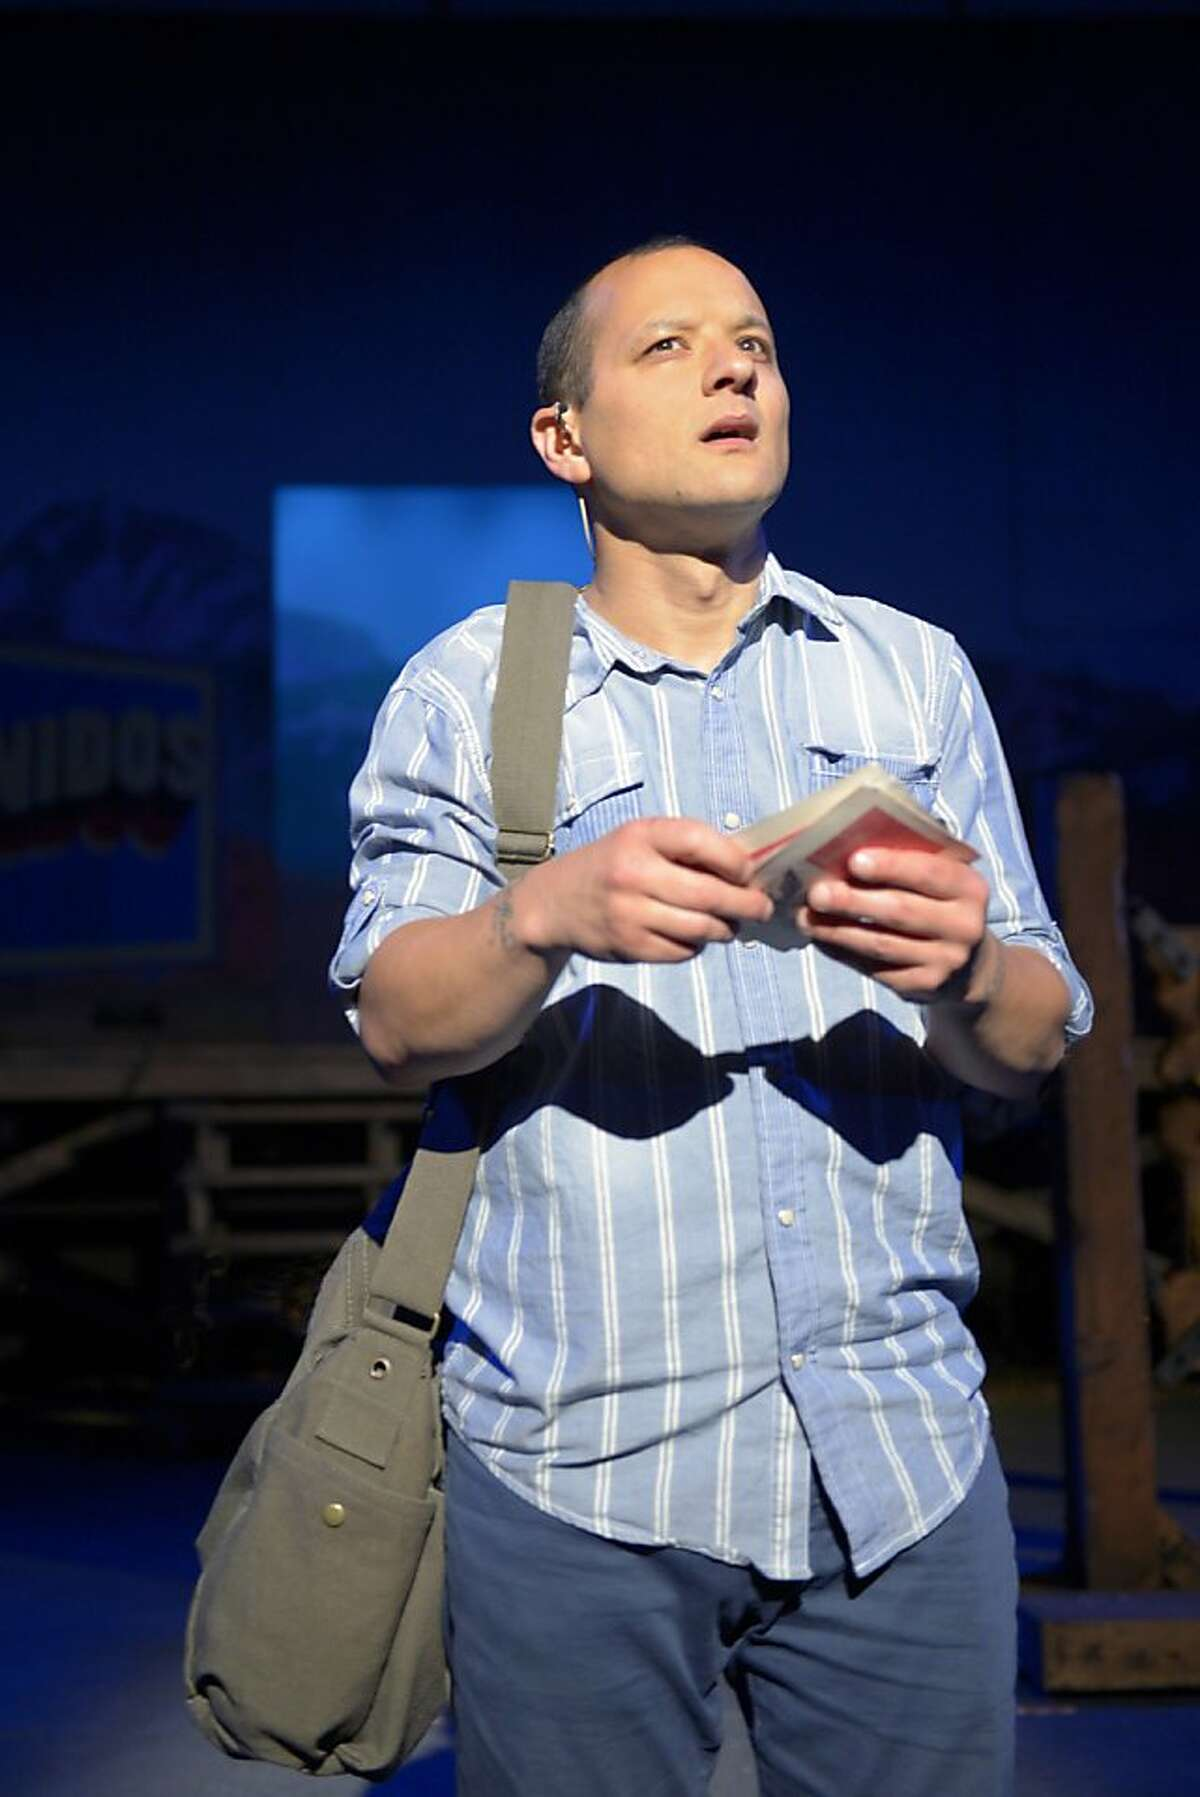 """Sean San Jose plays the title role of the immigrant on the verge of citizenship in Richard Montoya's """"American Night: The Ballad of Juan Jose"""" at California Shakespeare Theater. NOTE: Jose takes accent / over the e (in both instances)"""